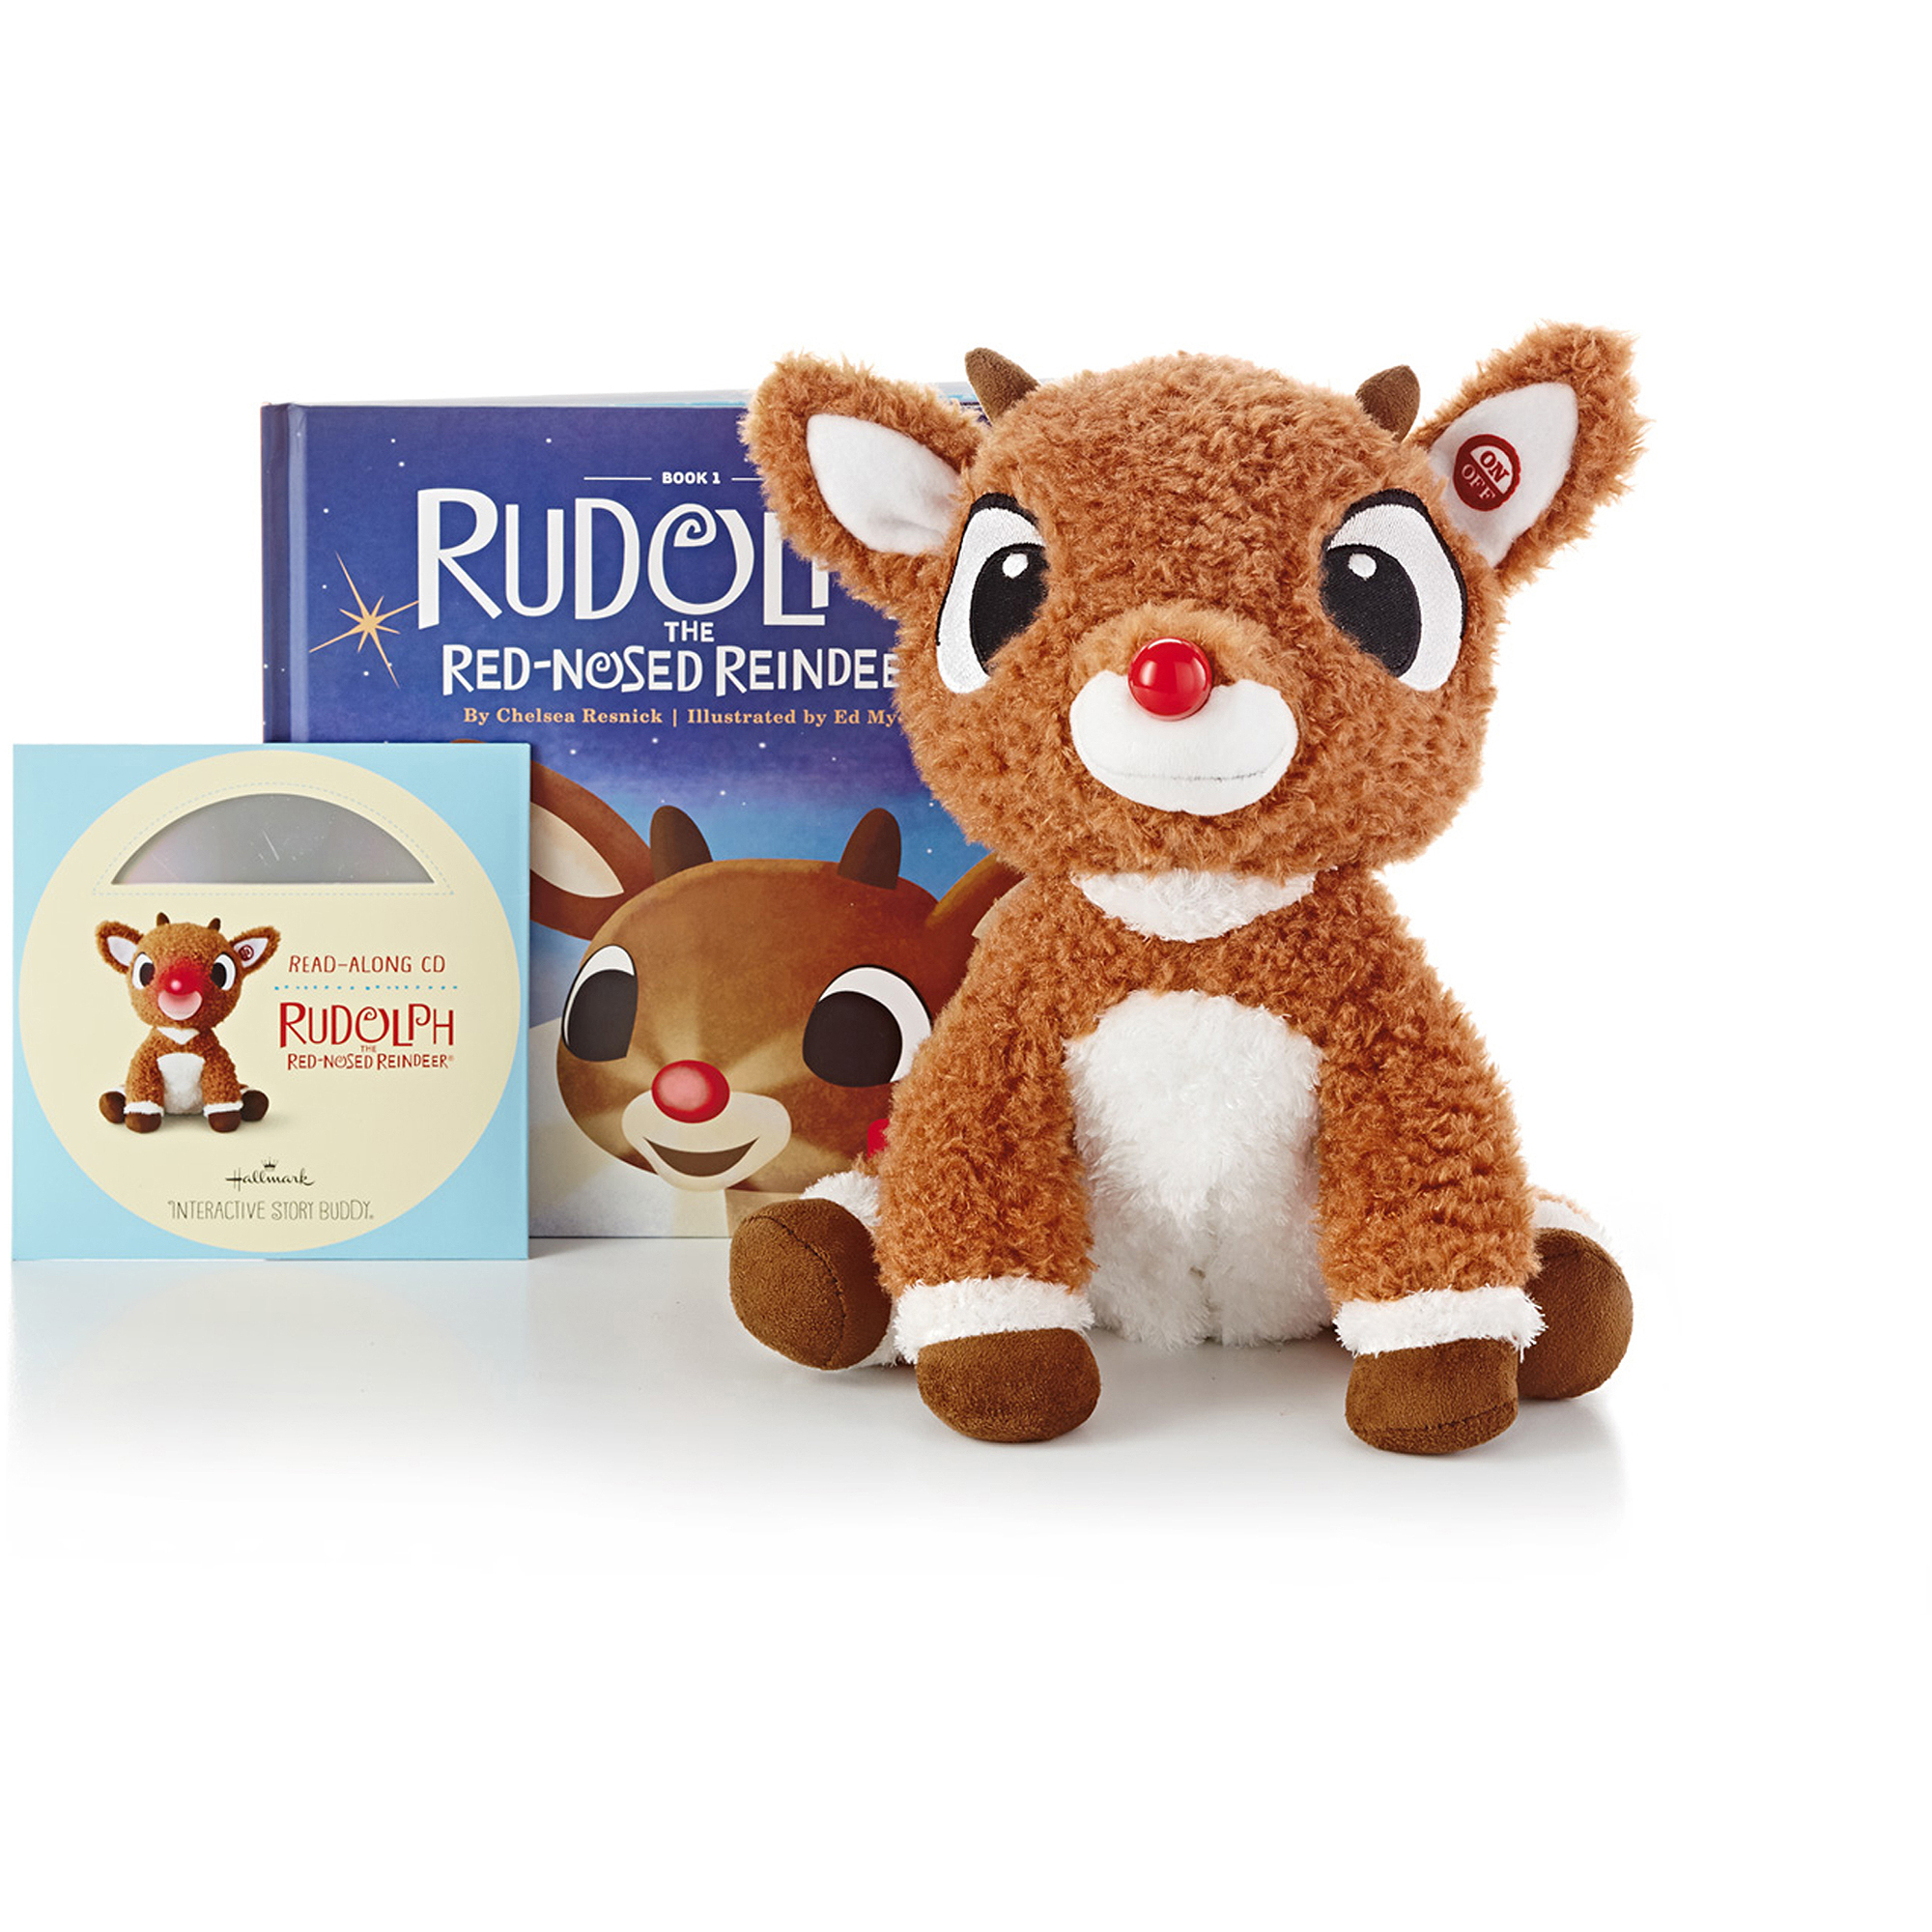 Hallmark Rudolph Interactive Story Buddy with Book and CD